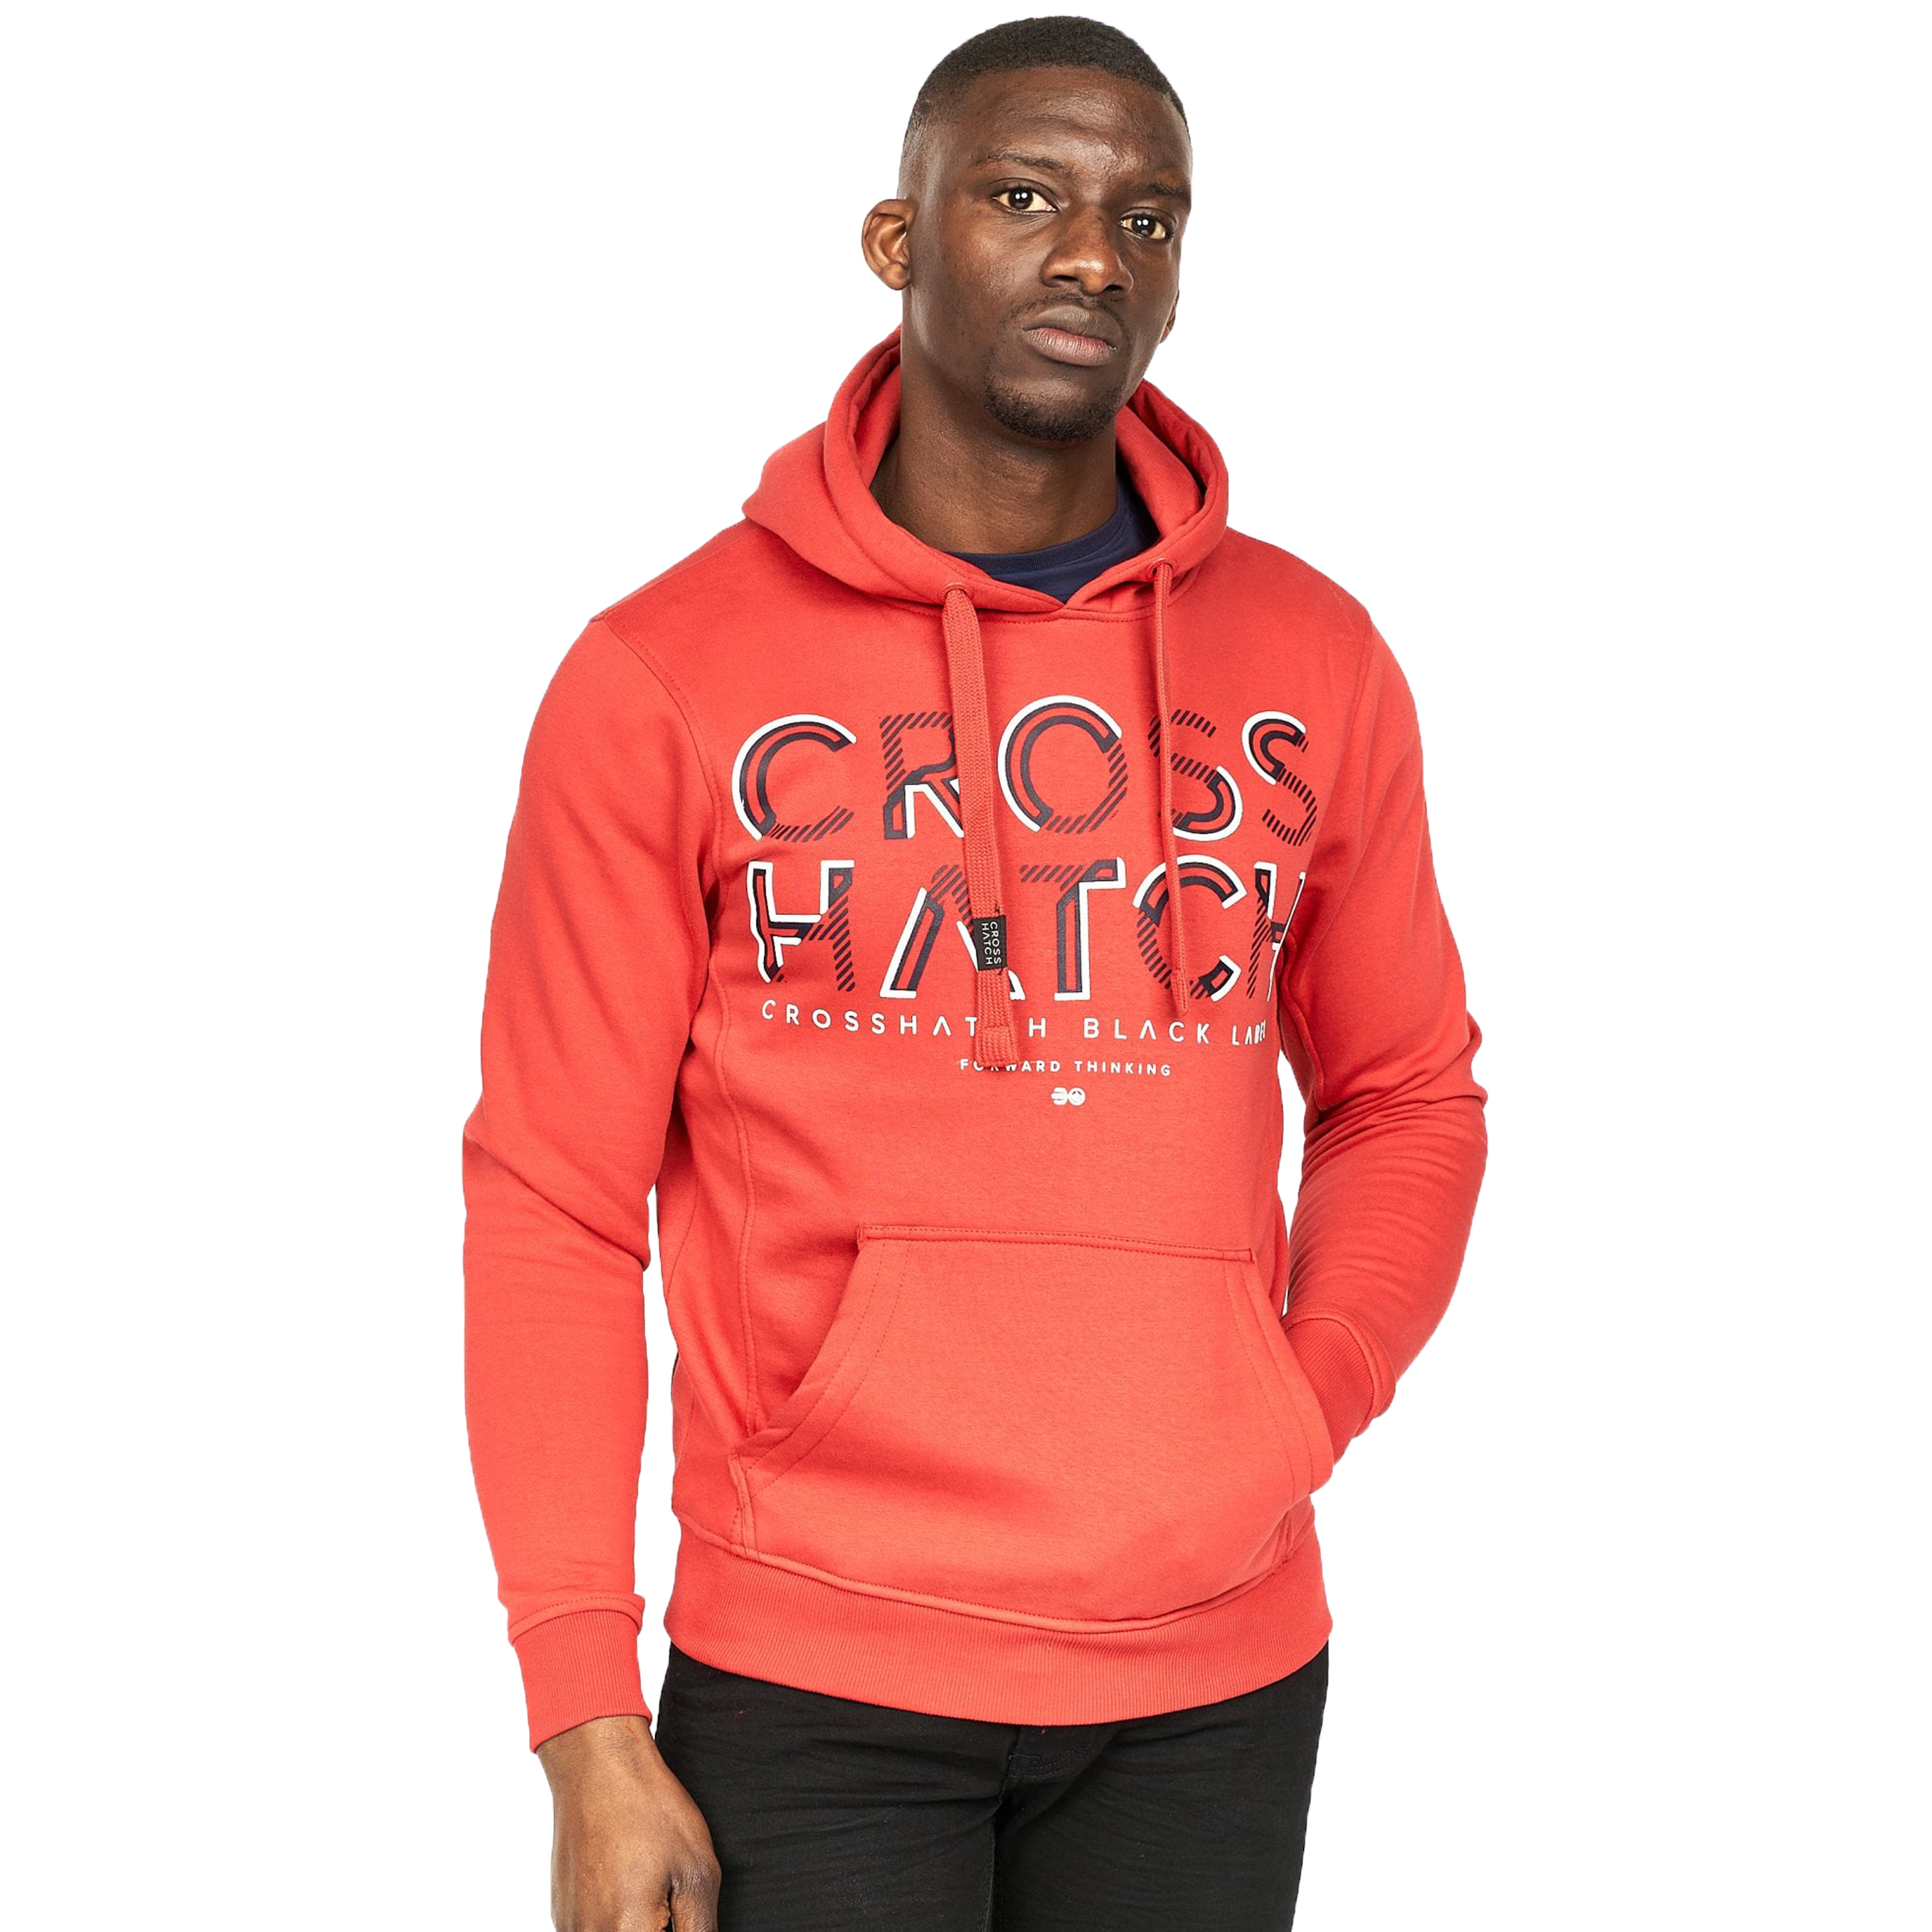 Mens-Sweatshirt-By-Crosshatch-Over-The-Head-Hoodie-Printed-Pullover-Cotton-Top thumbnail 22